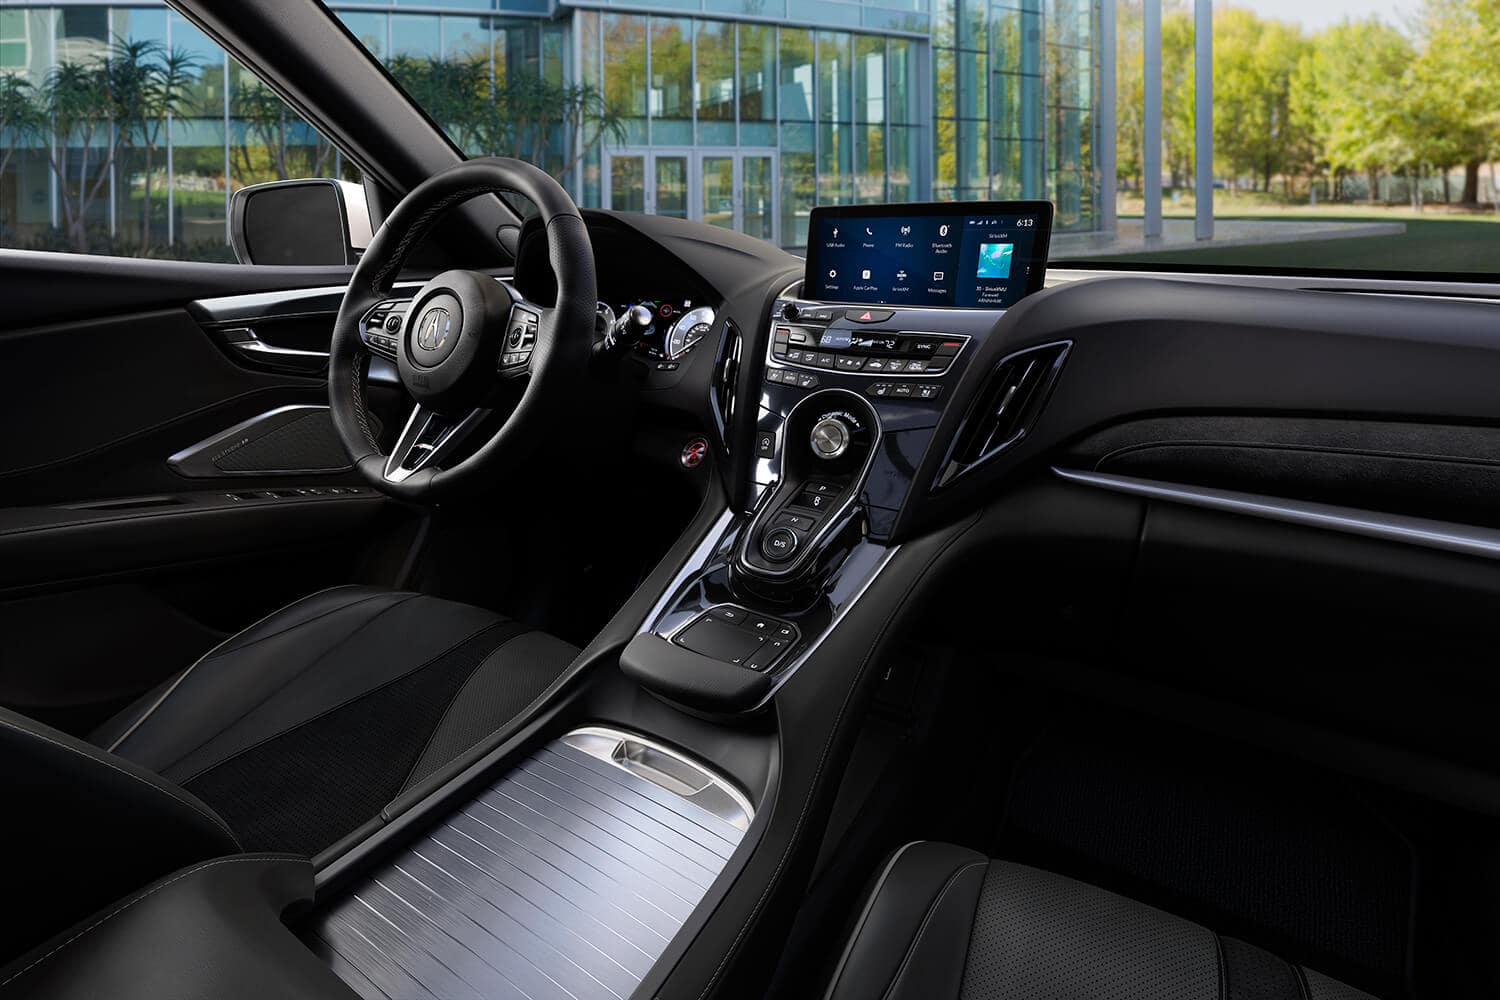 2019 Acura RDX Interior Passenger Side